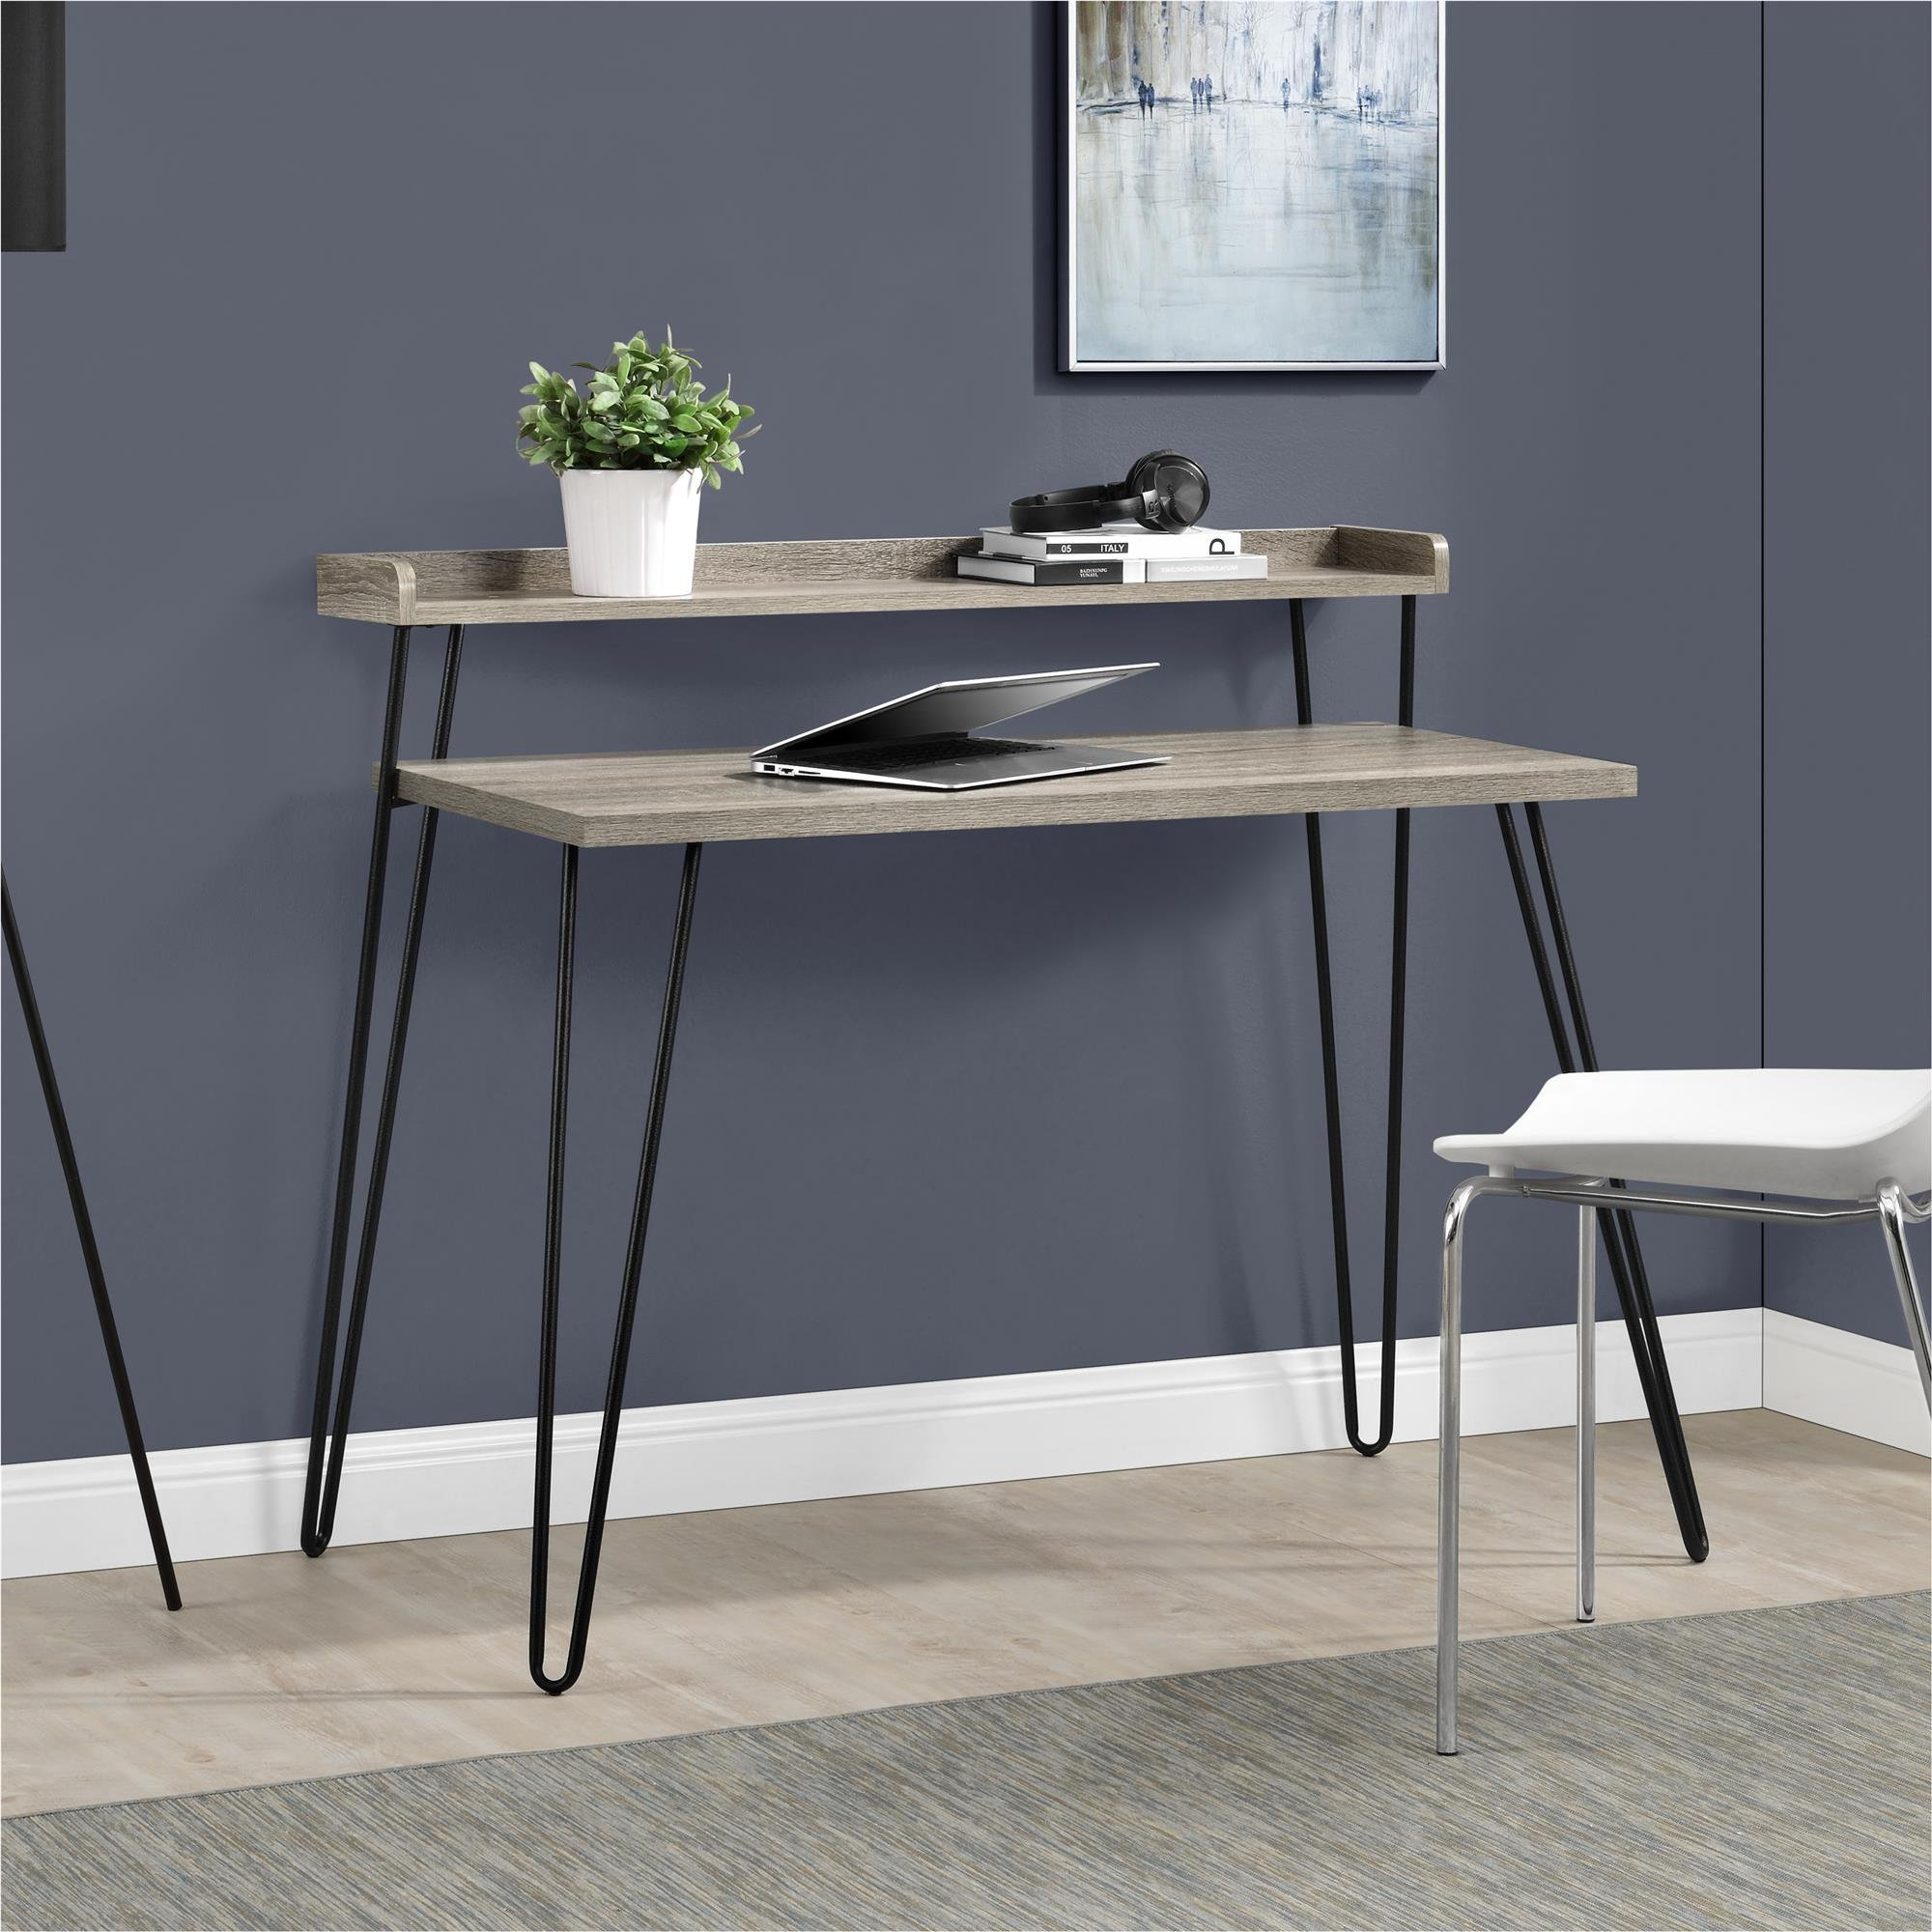 Ameriwood Home Haven Retro Desk with Riser, Weathered Oak by Ameriwood Home